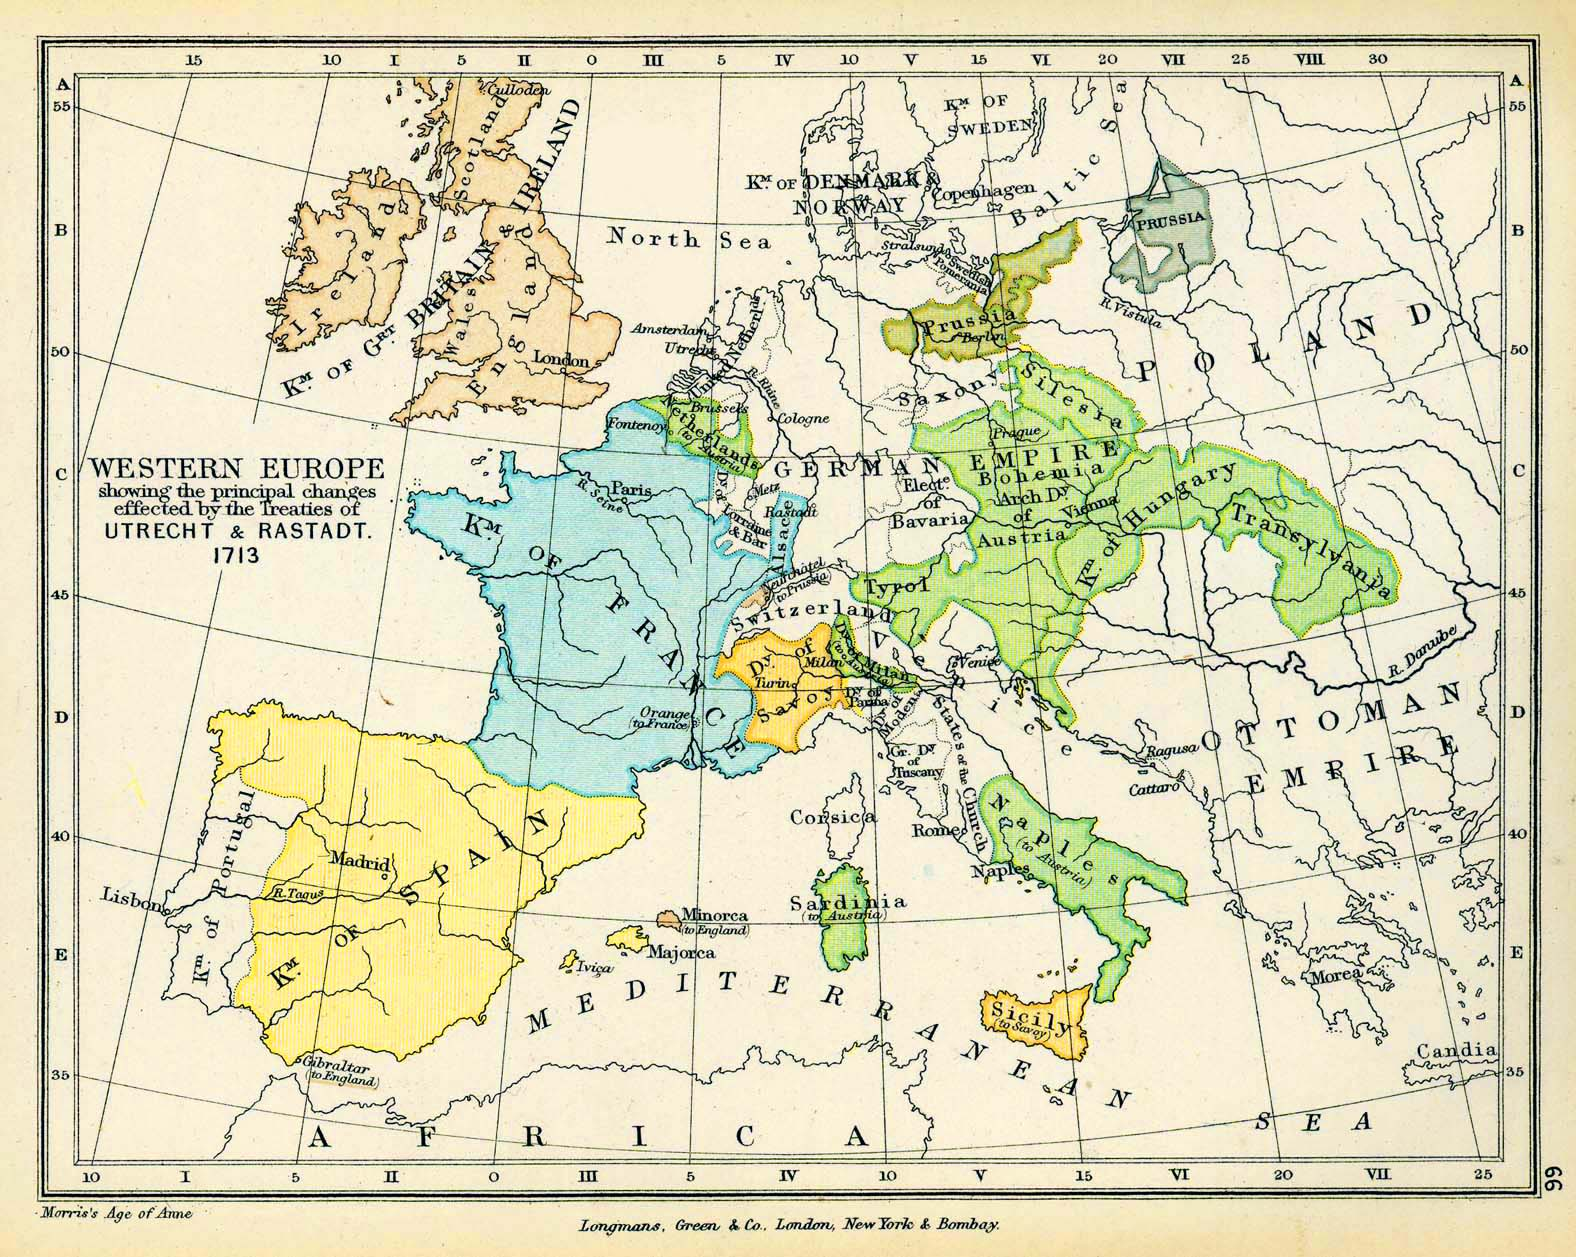 Map of Western Europe 1713: The Treaties of Utrecht and Rastatt